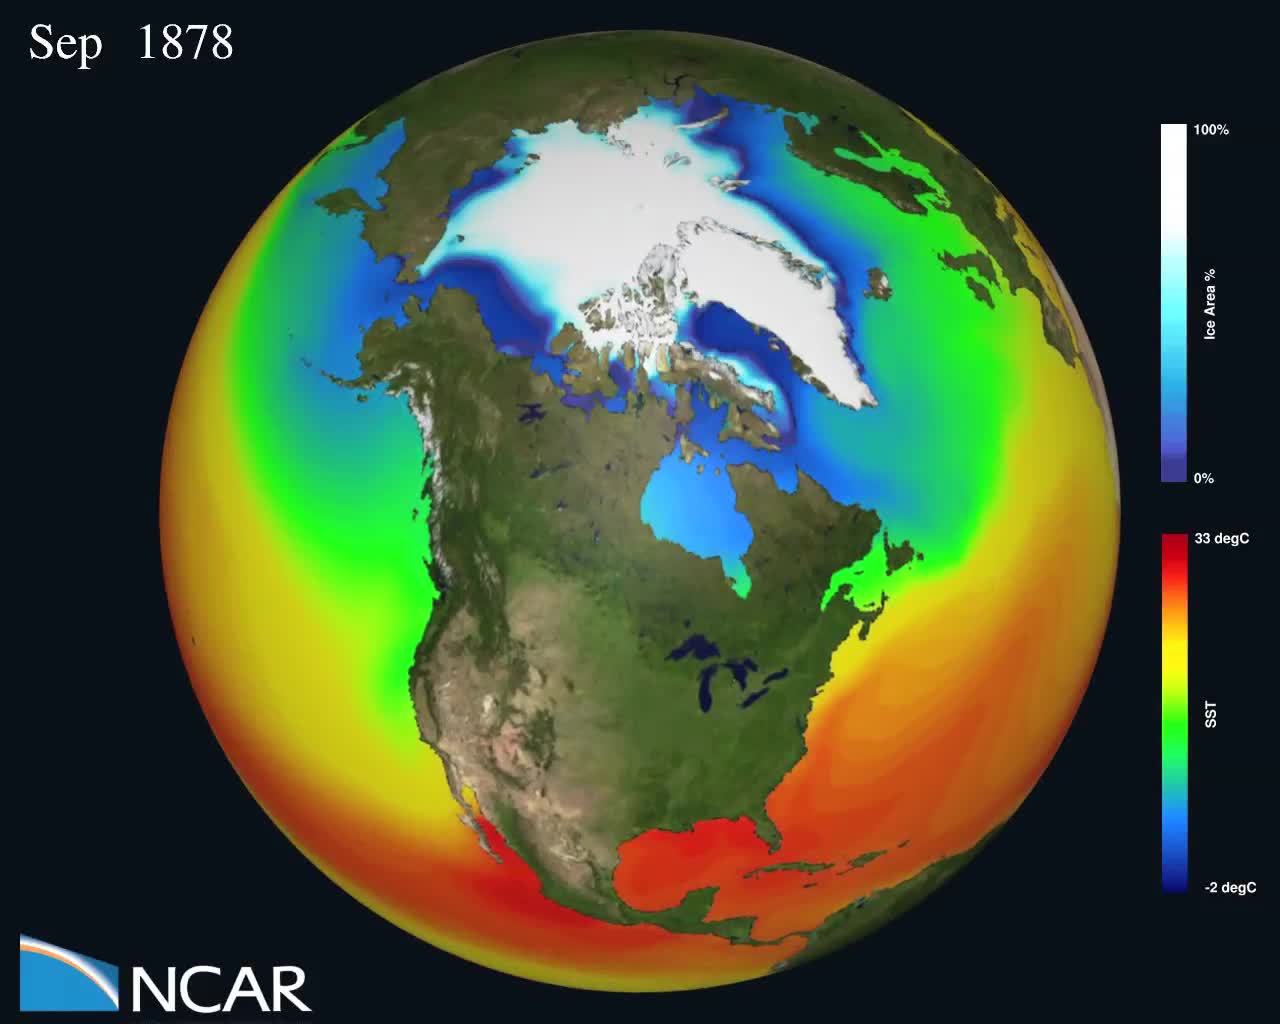 20th-21st century CCSM4 Model sea ice cover change and SST